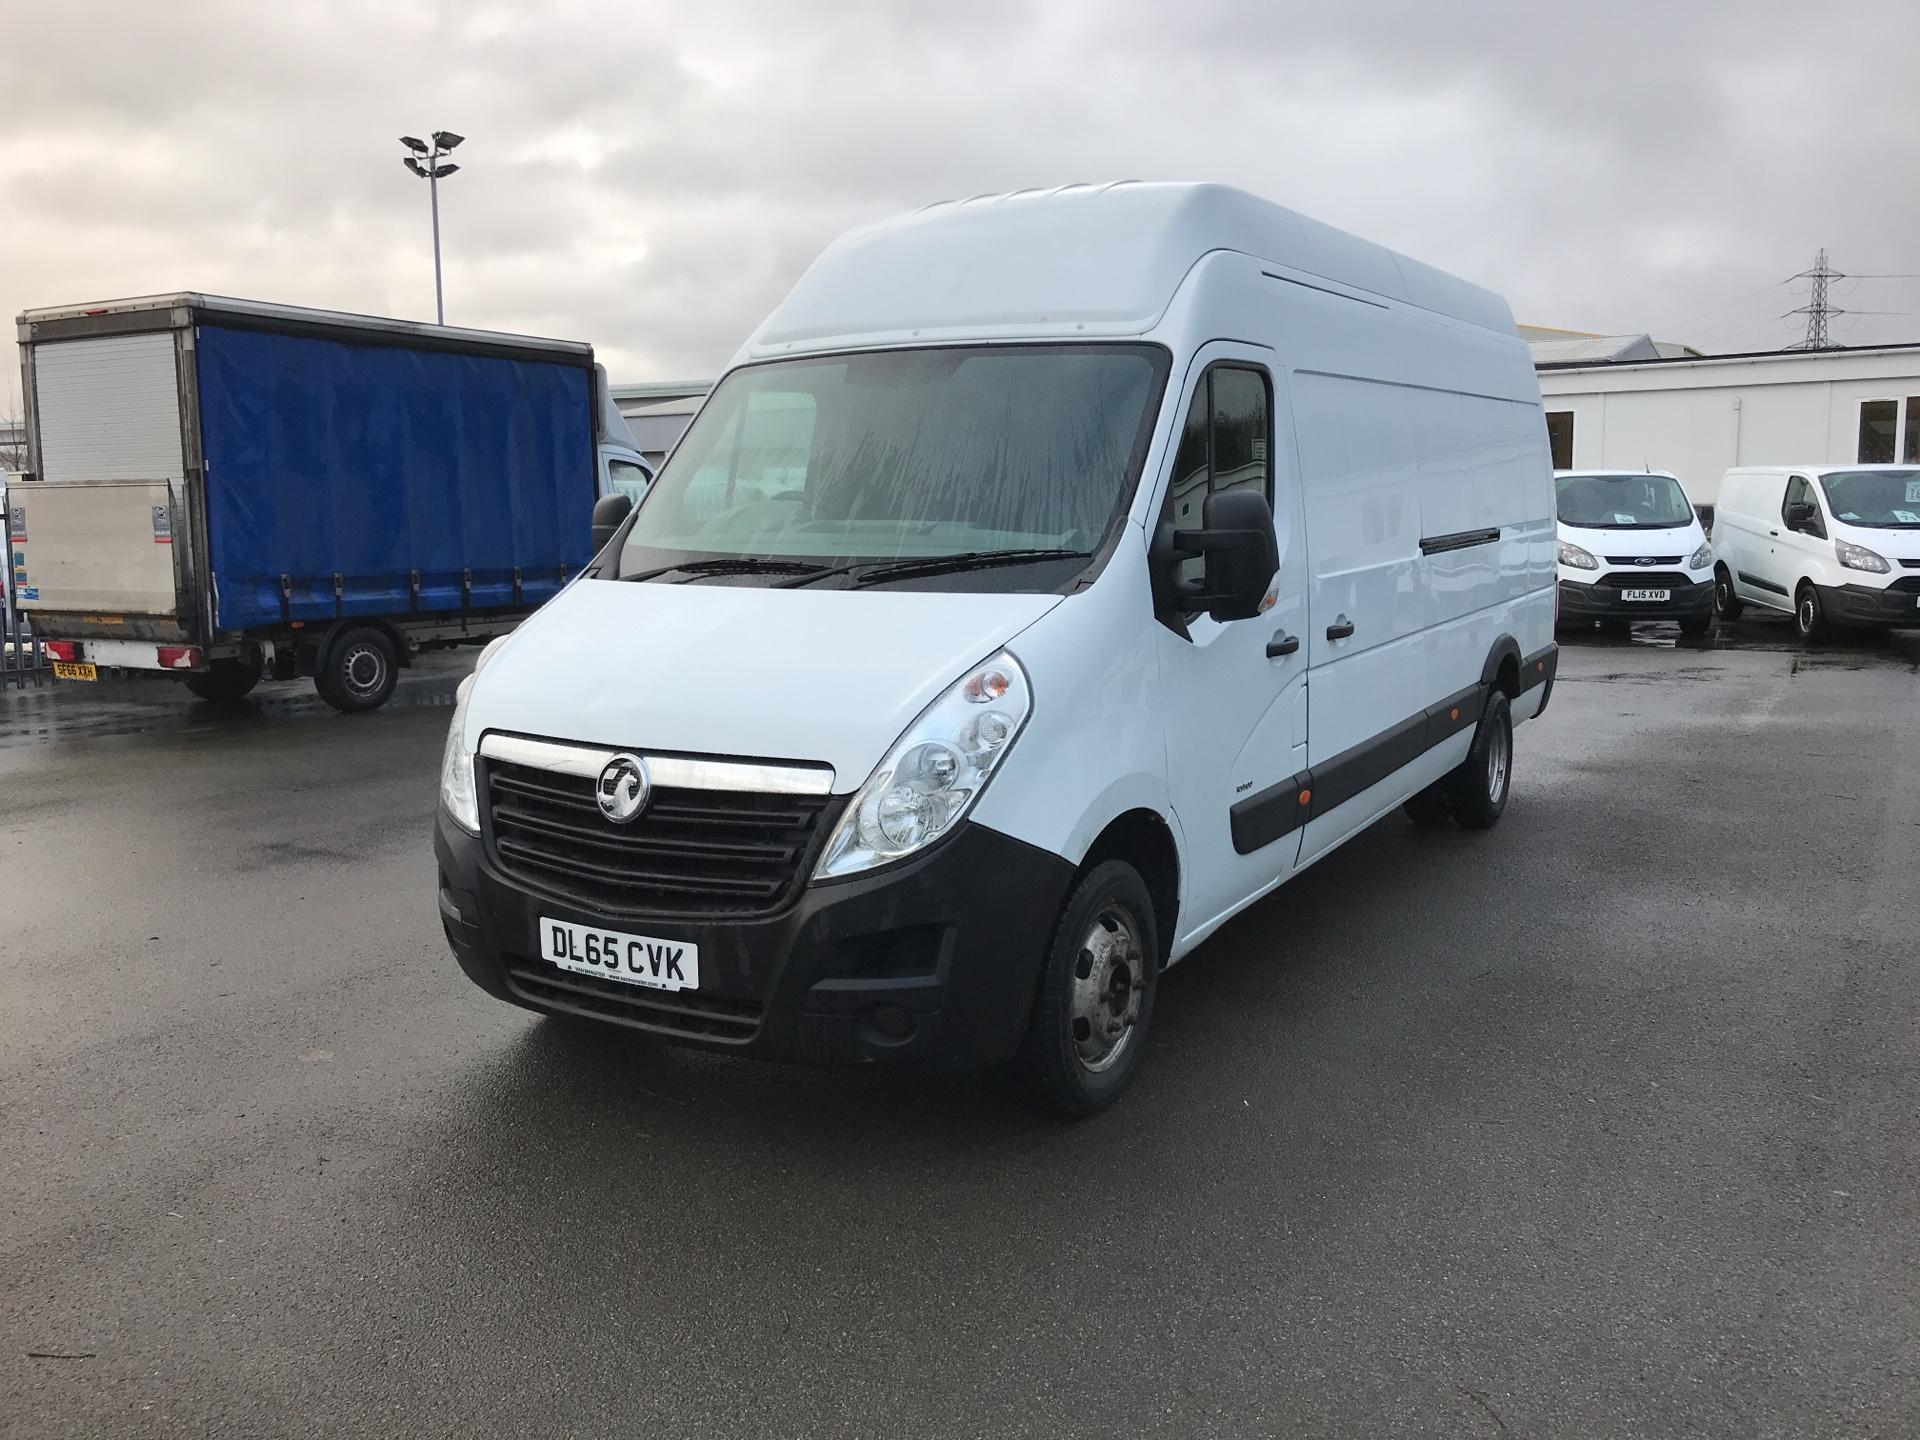 2015 Vauxhall Movano 35 L3 H3 125PS EURO 5 *VALUE RANGE VEHICLE - CONDITION REFLECTED IN PRICE* (DL65CVK) Image 7